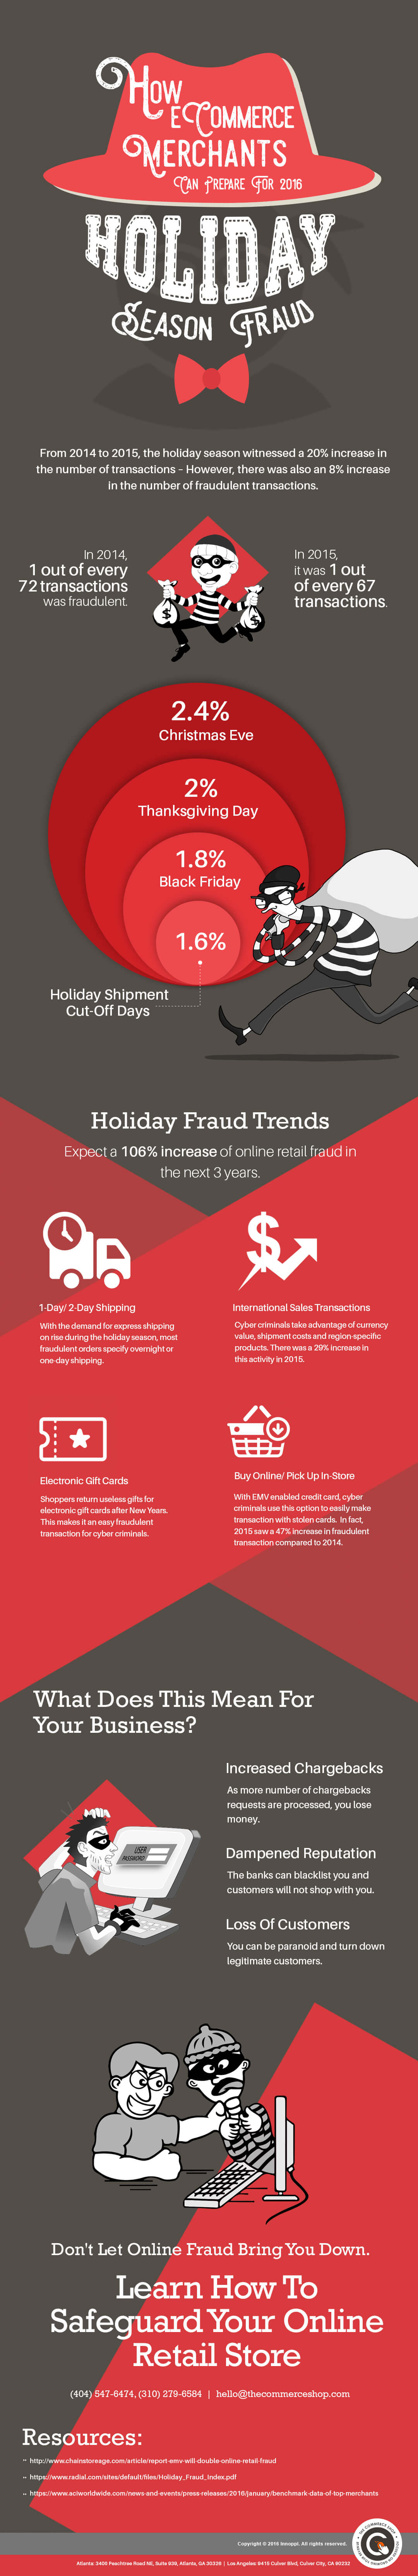 how-ecommerce-merchants-can-prepare-for-2016-holiday-season-fraud-infographic-plaza